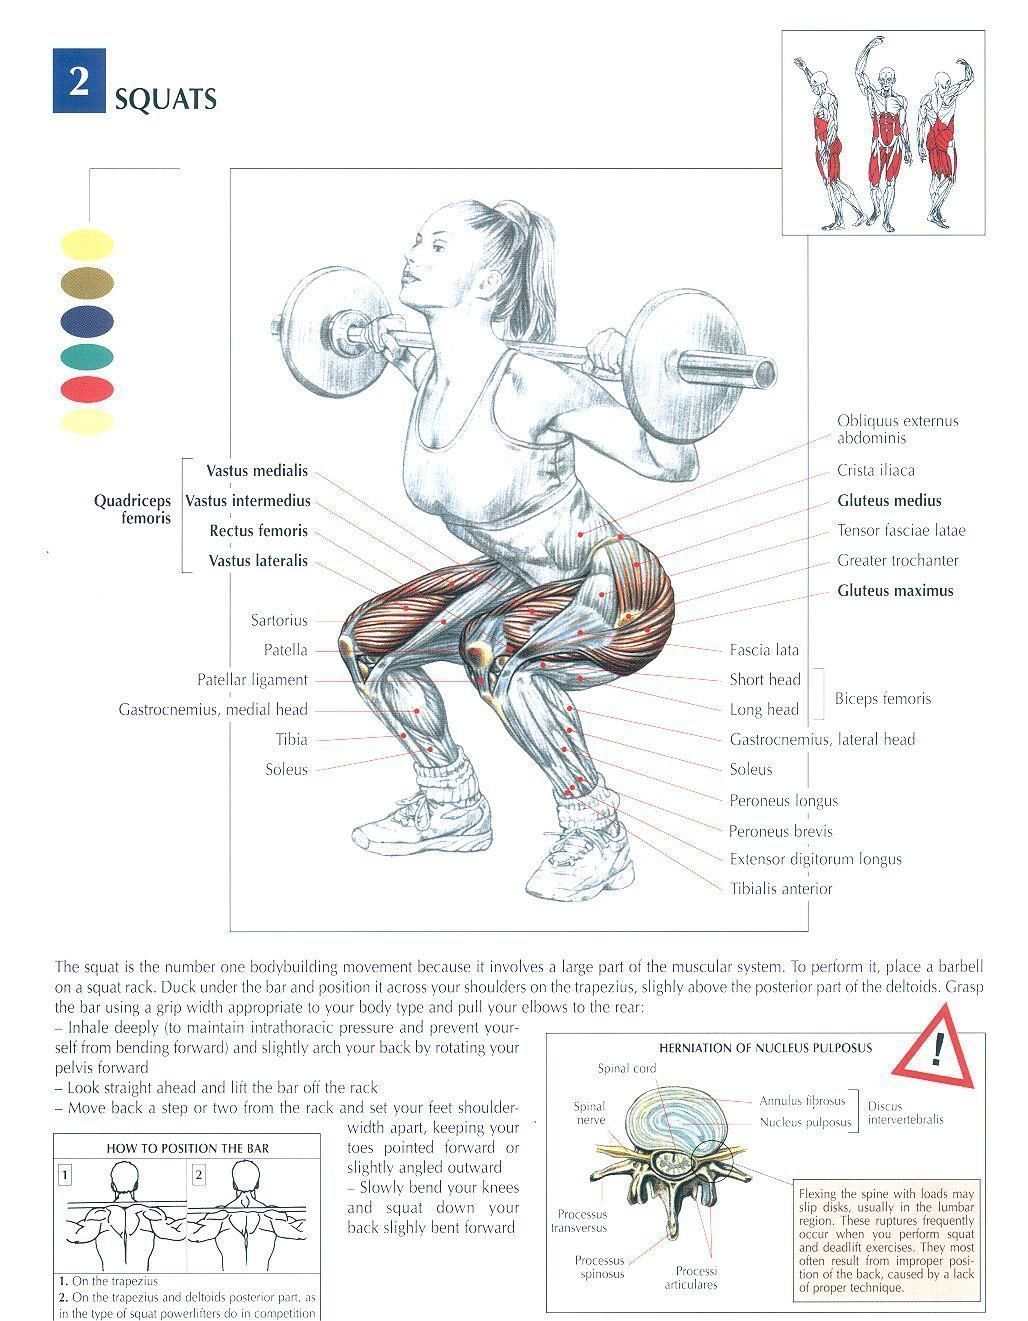 #bodybuilding #exercises #gymsquats #diagrams #fitness #muscles #legs♦ #health #squats #body